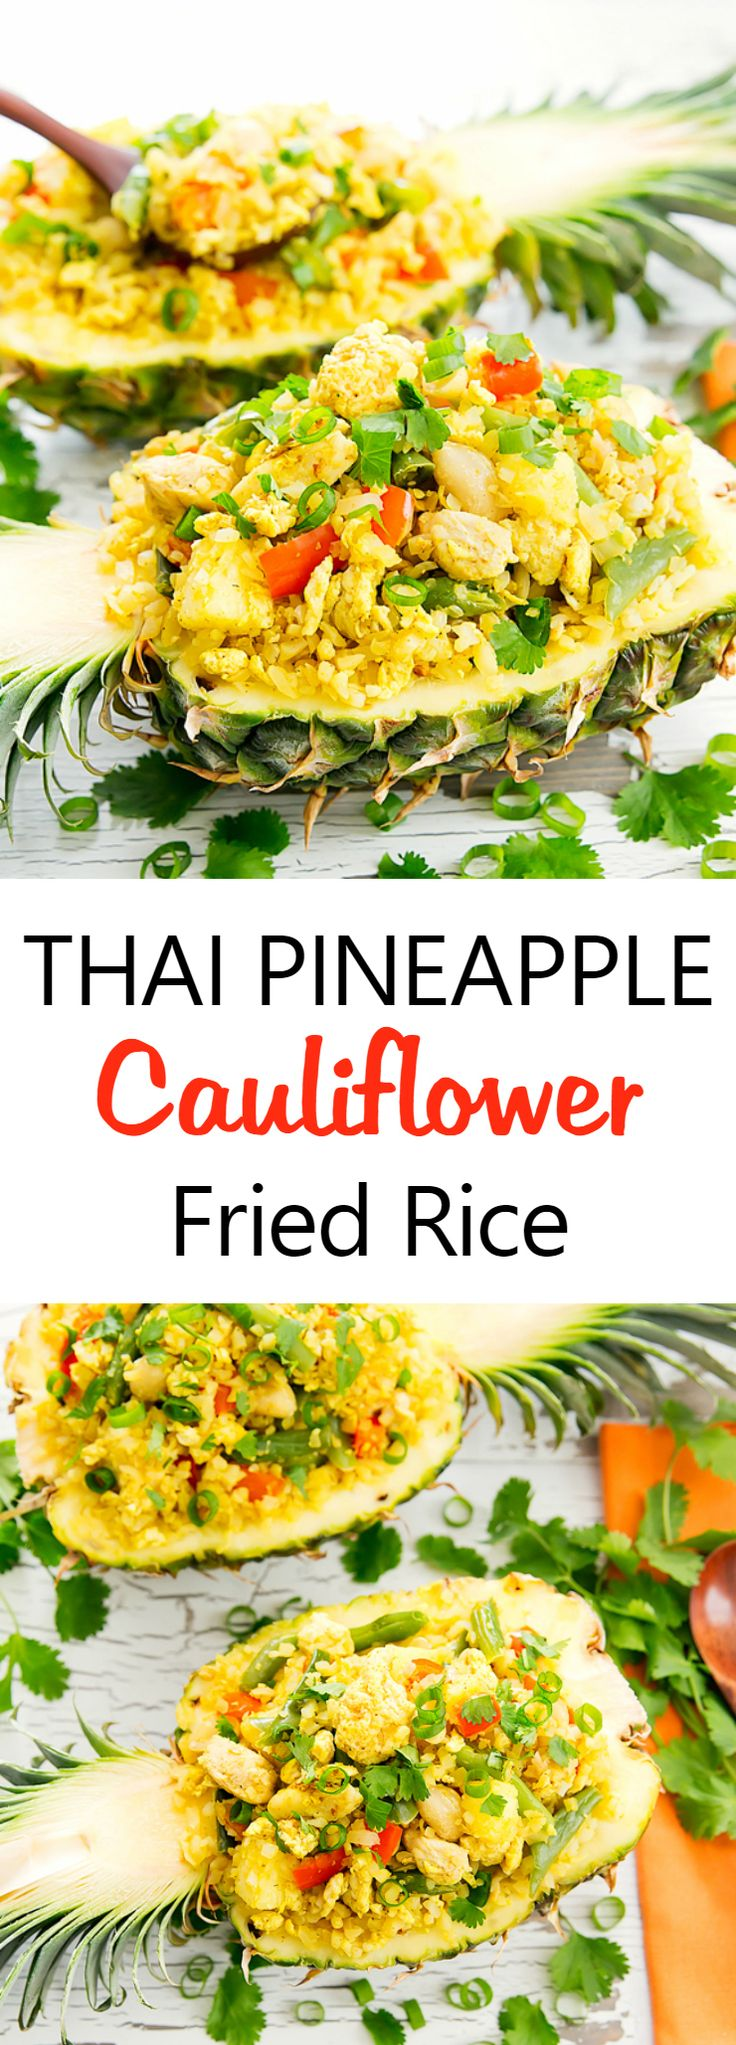 Thai Pineapple Cauliflower Fried Rice. Replacing rice with cauliflower rice for a low carb, gluten free and just as flavorful version of the original!